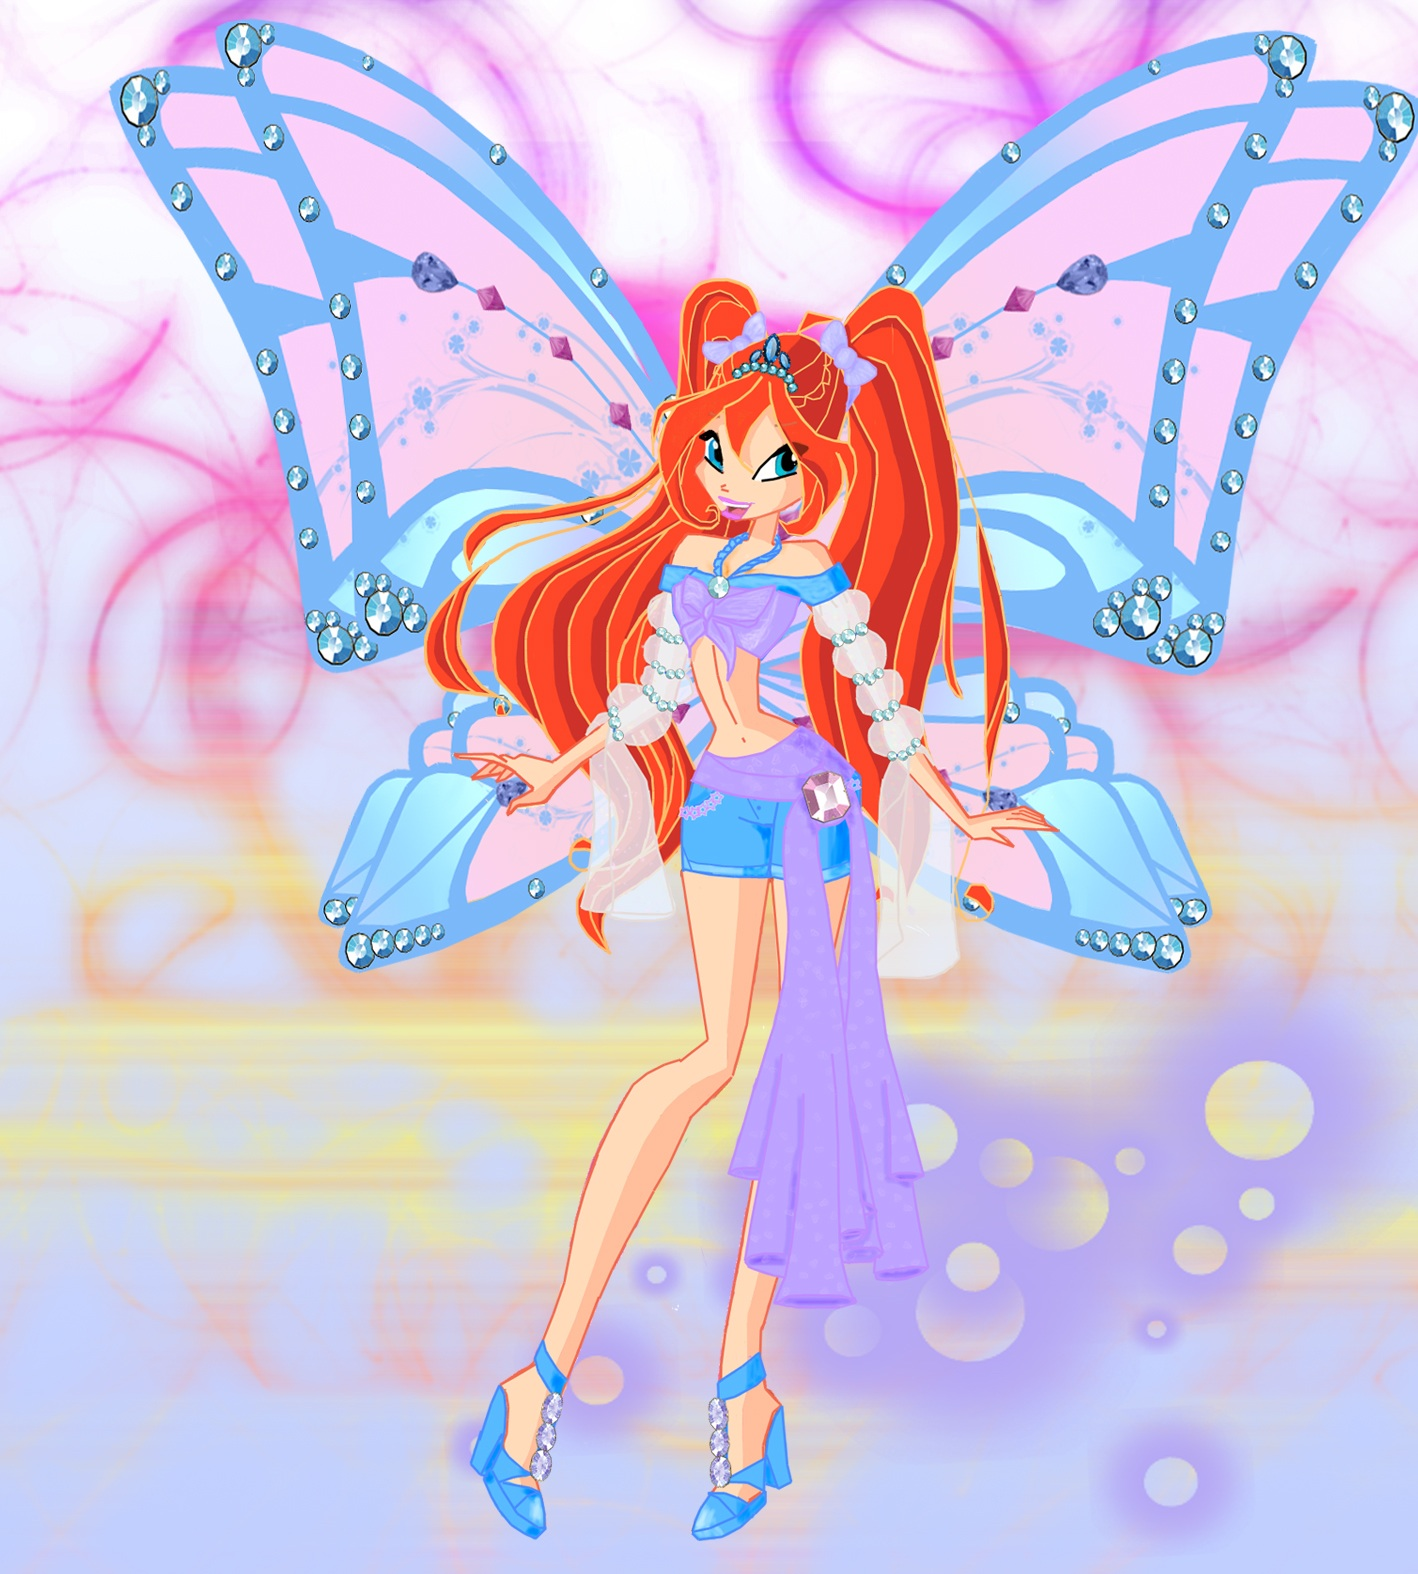 Winx Vs Trix Images Bloom Hd Wallpaper And Background Winx Club Bloom